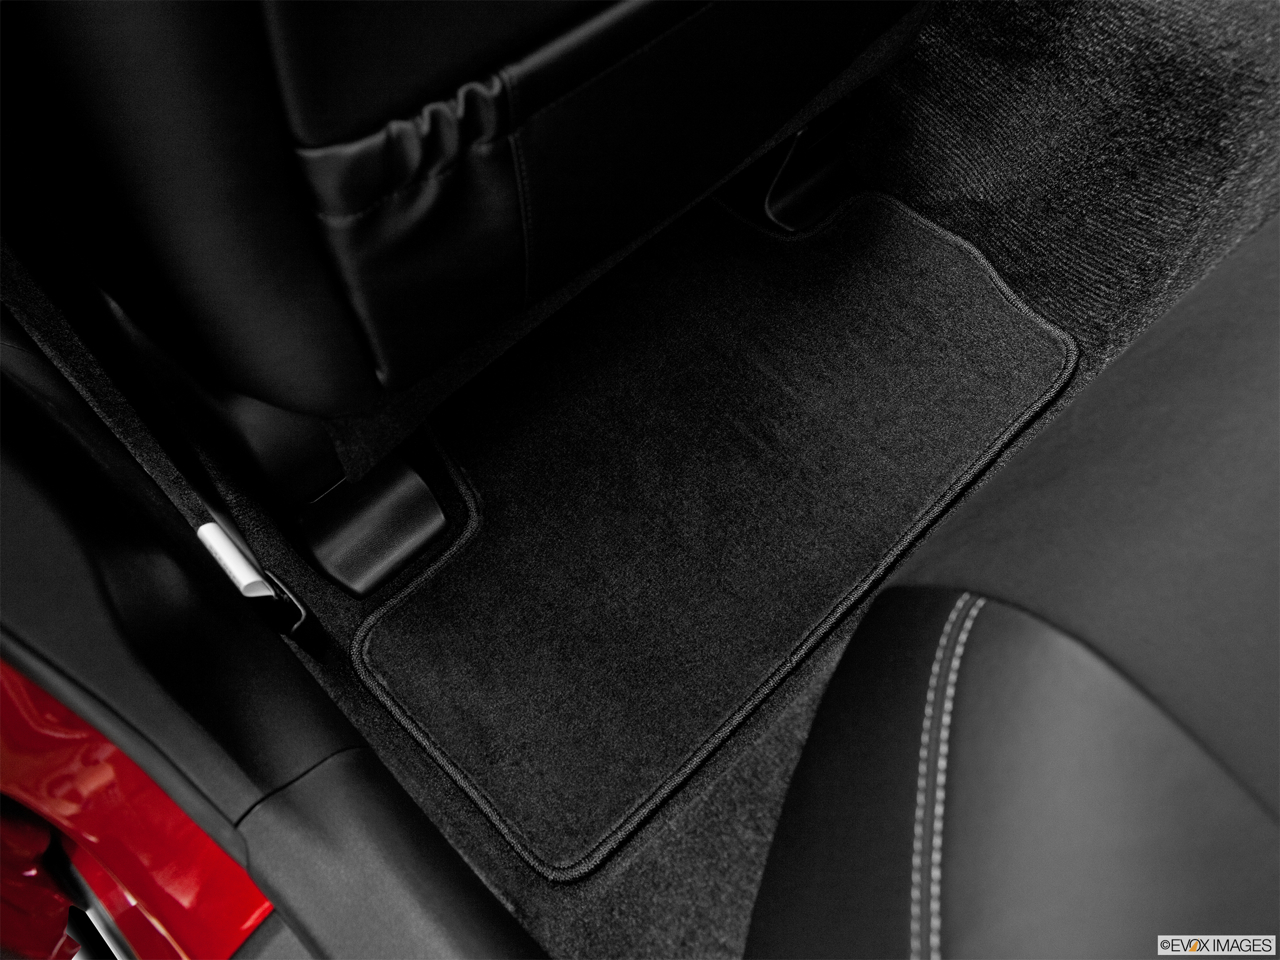 2011 Lexus IS 250 IS250 Rear driver's side floor mat. Mid-seat level from outside looking in.